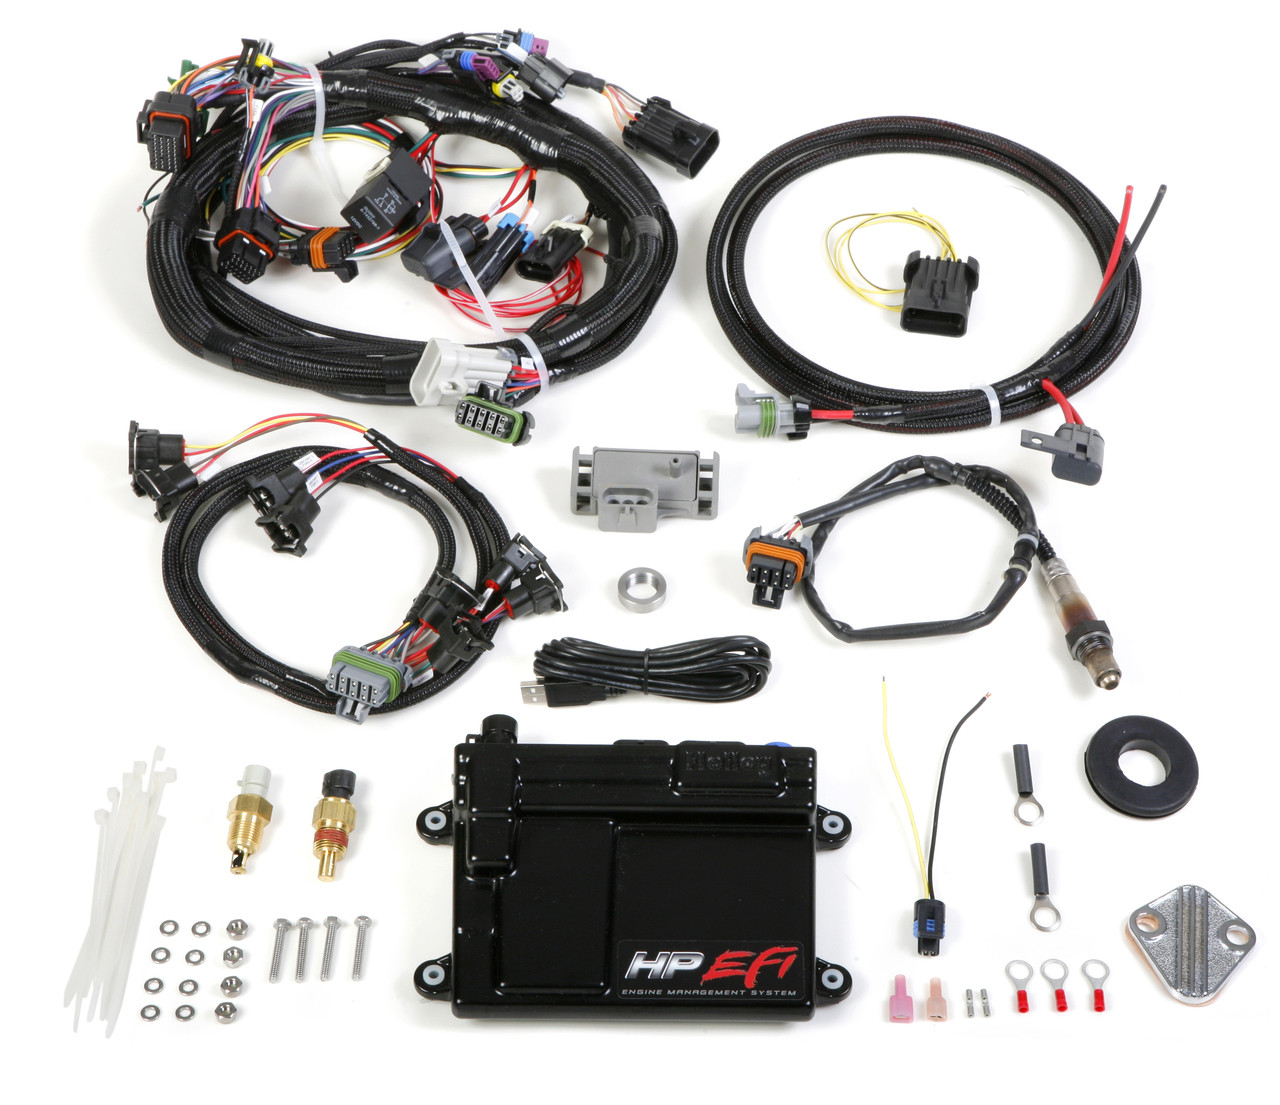 Holley EFI HP ECU AND HARNESS KIT - Universal Multi Point Fuel Injection